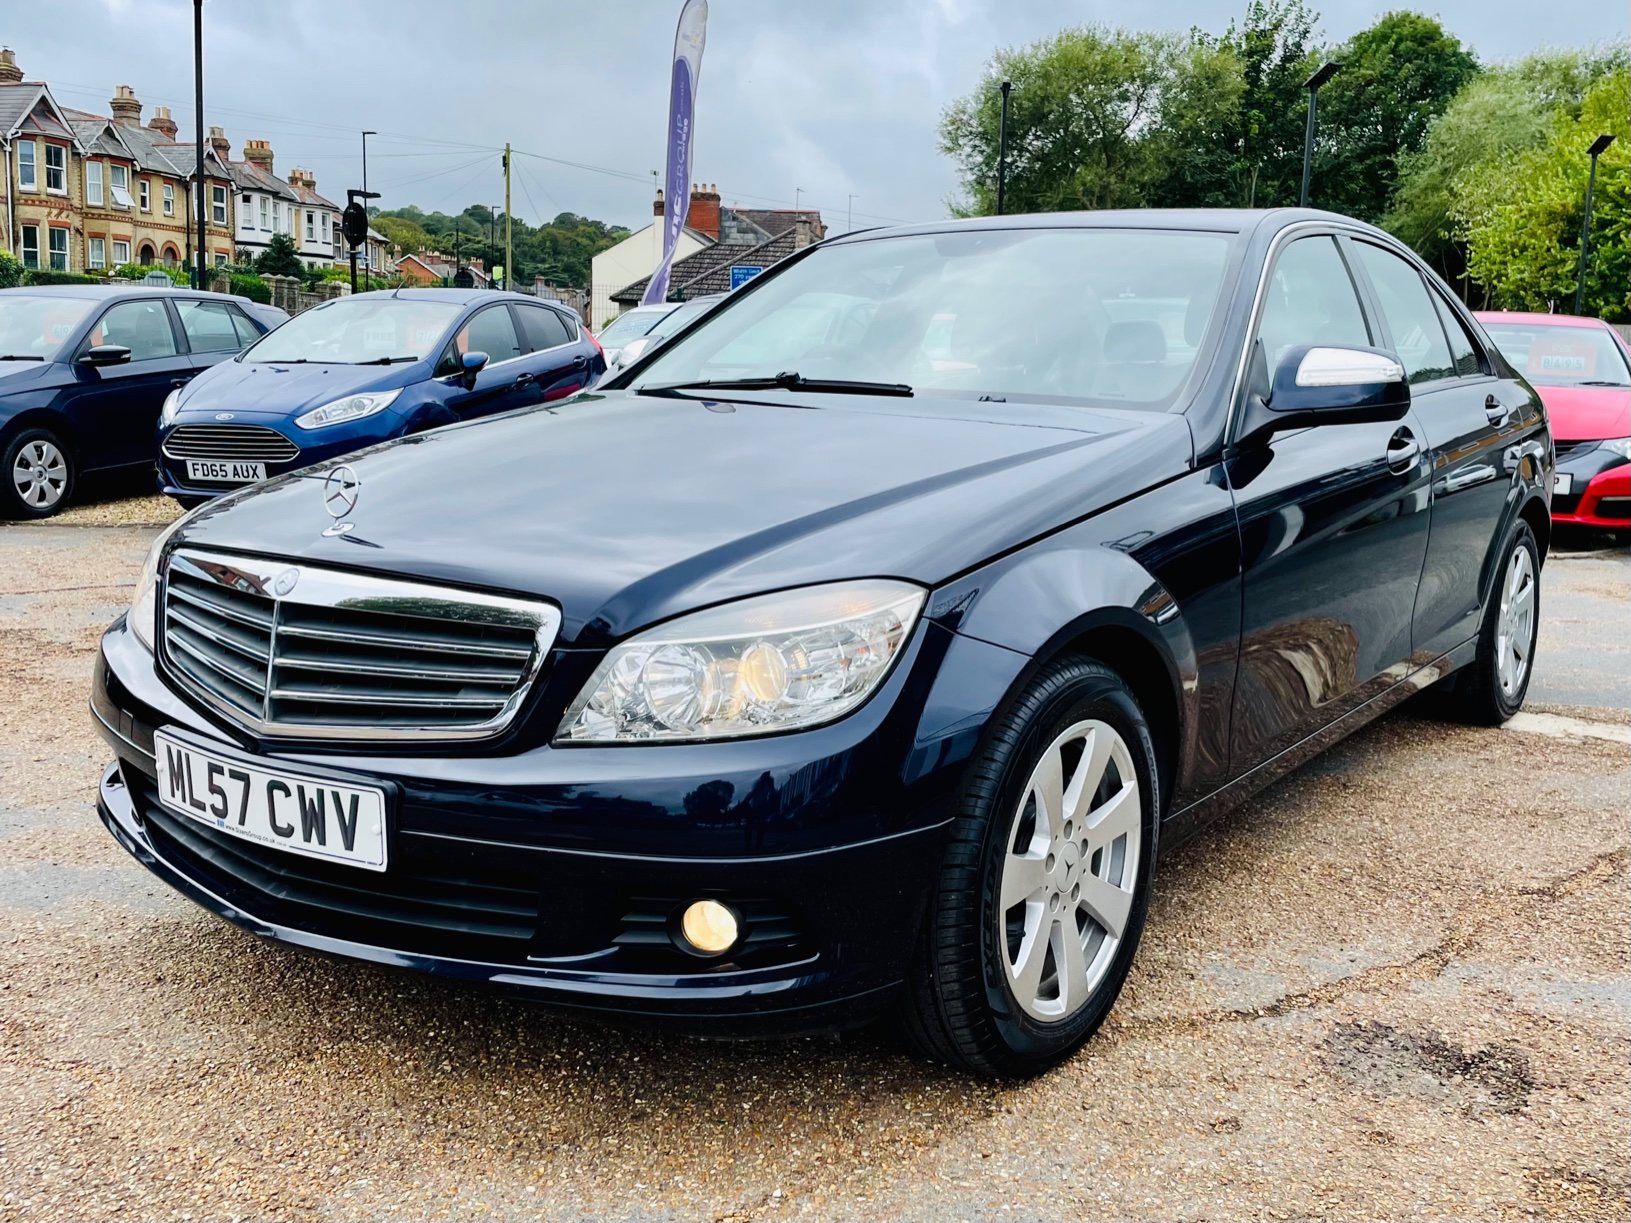 Car For Sale Mercedes C-Class - ML57CWV Sixers Group Image #6